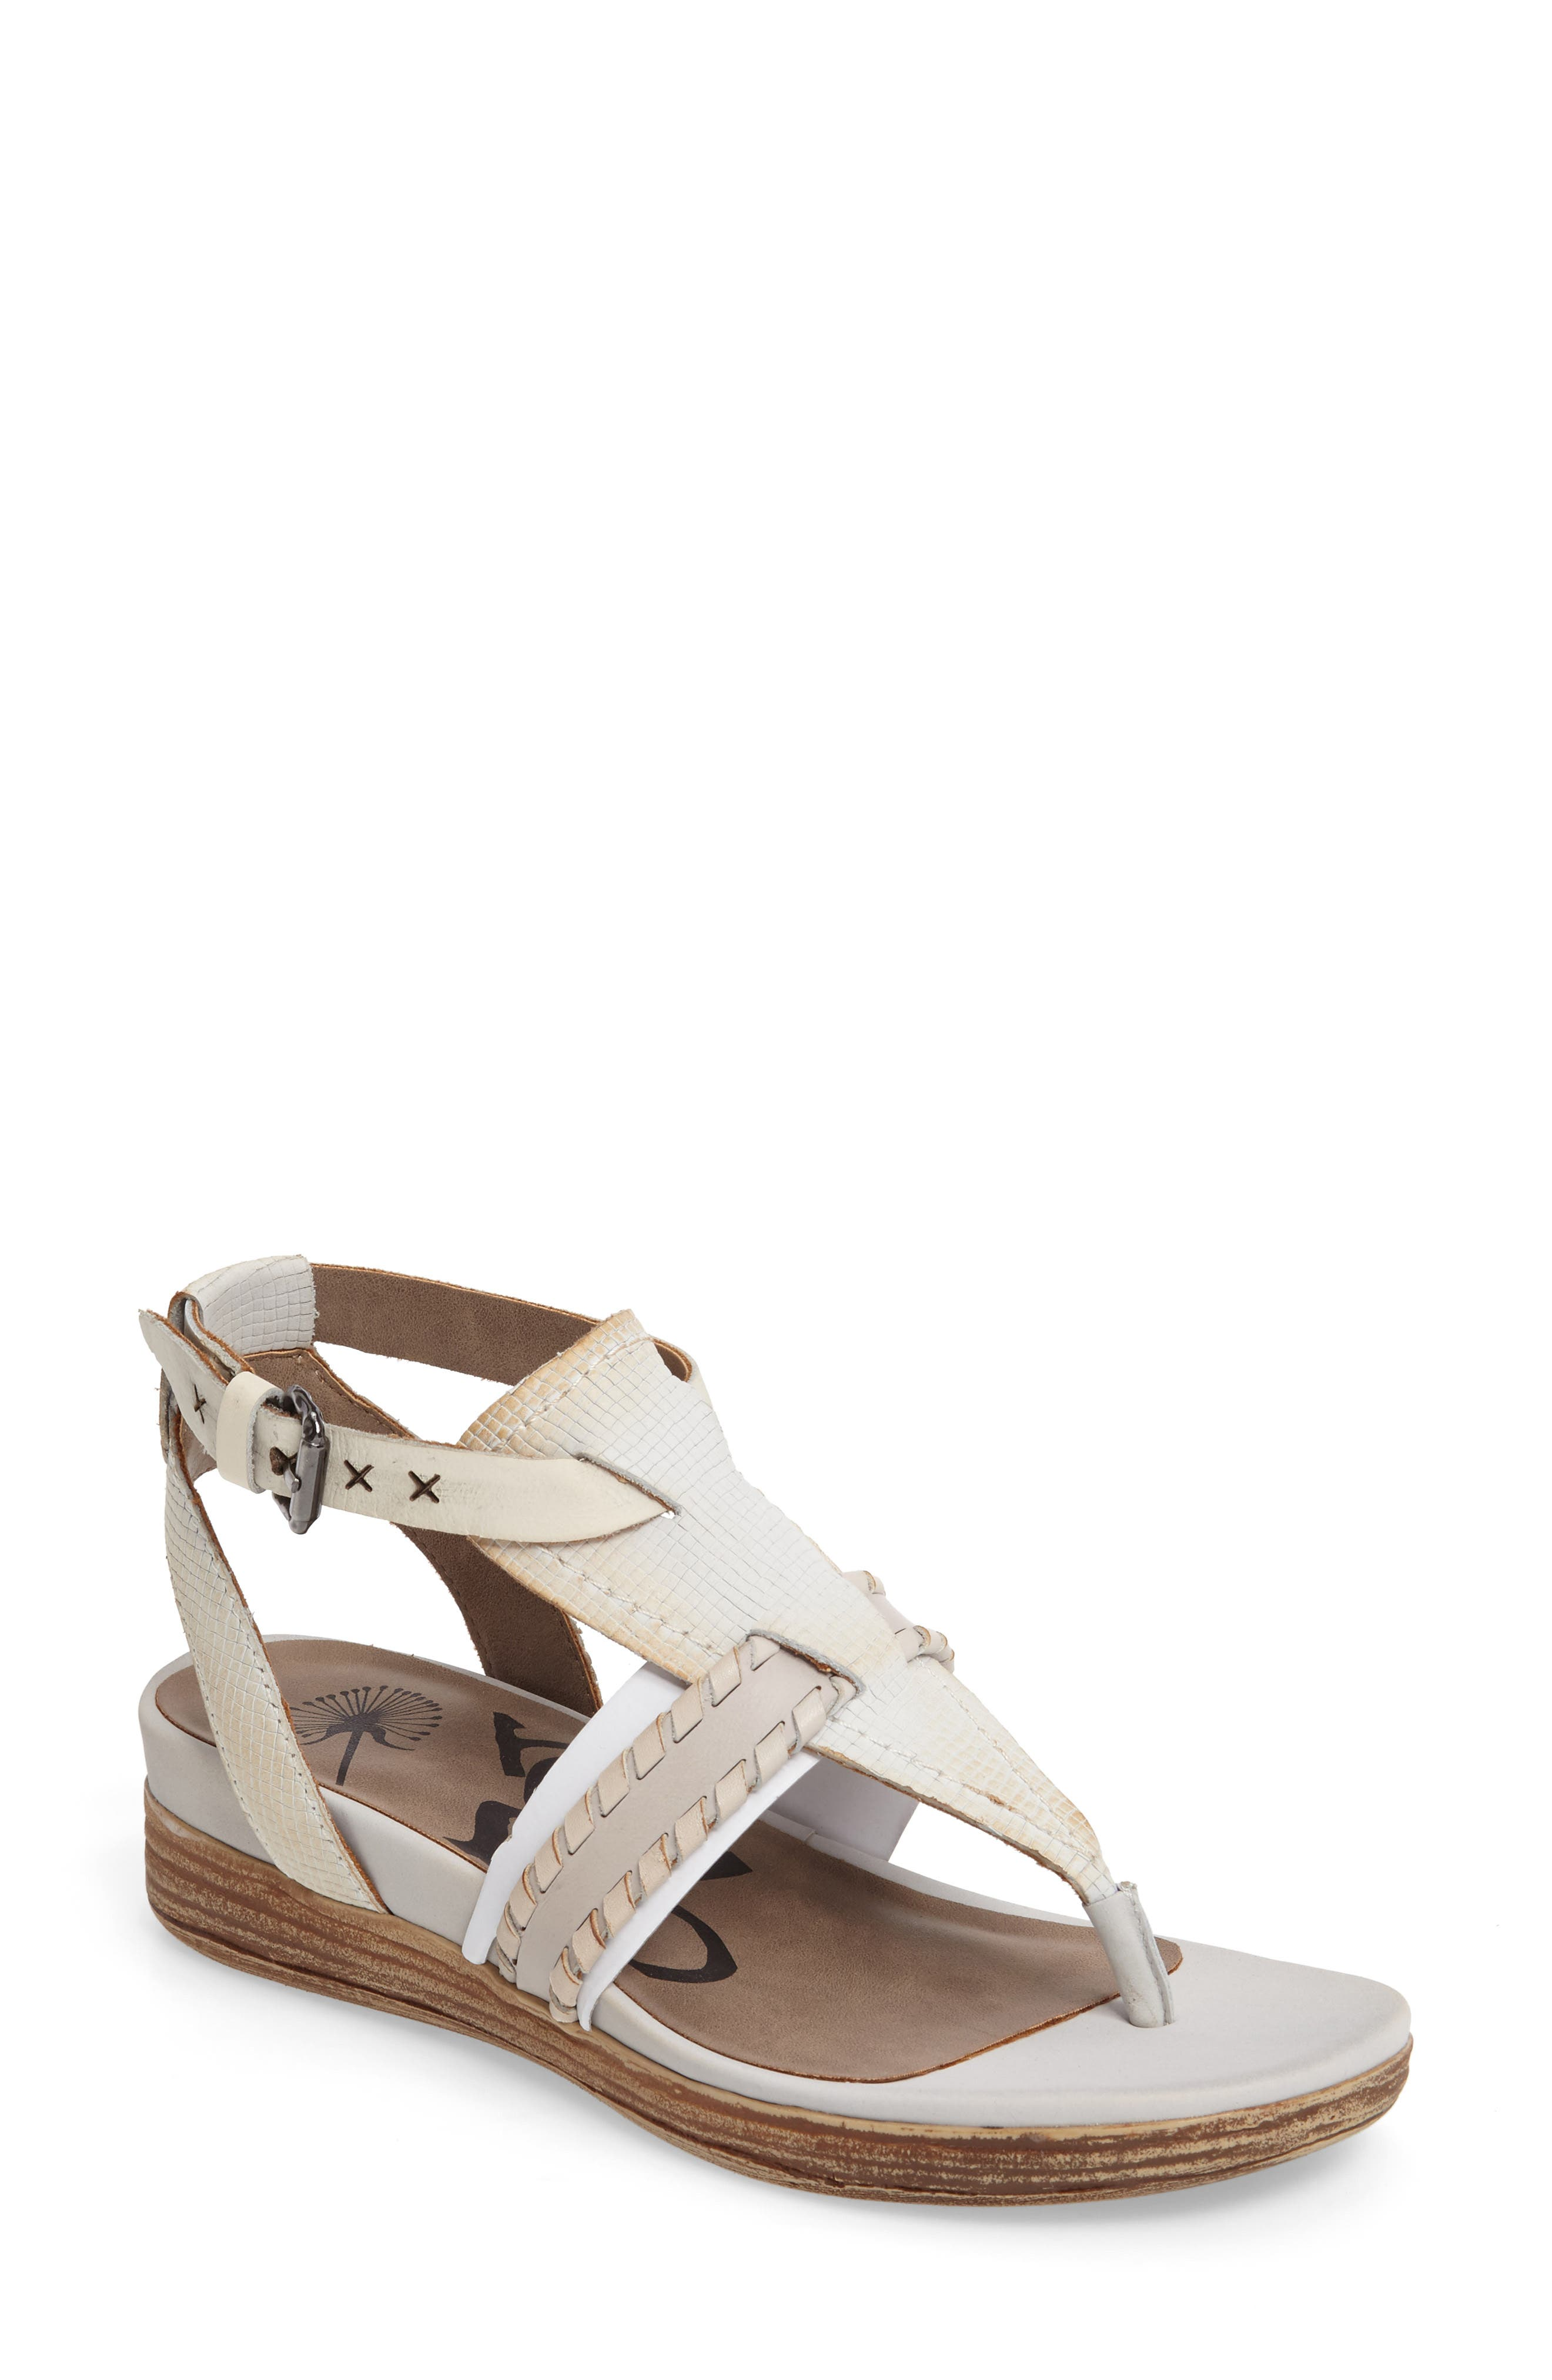 Celestial V-Strap Wedge Sandal,                             Main thumbnail 1, color,                             Light Clay Leather